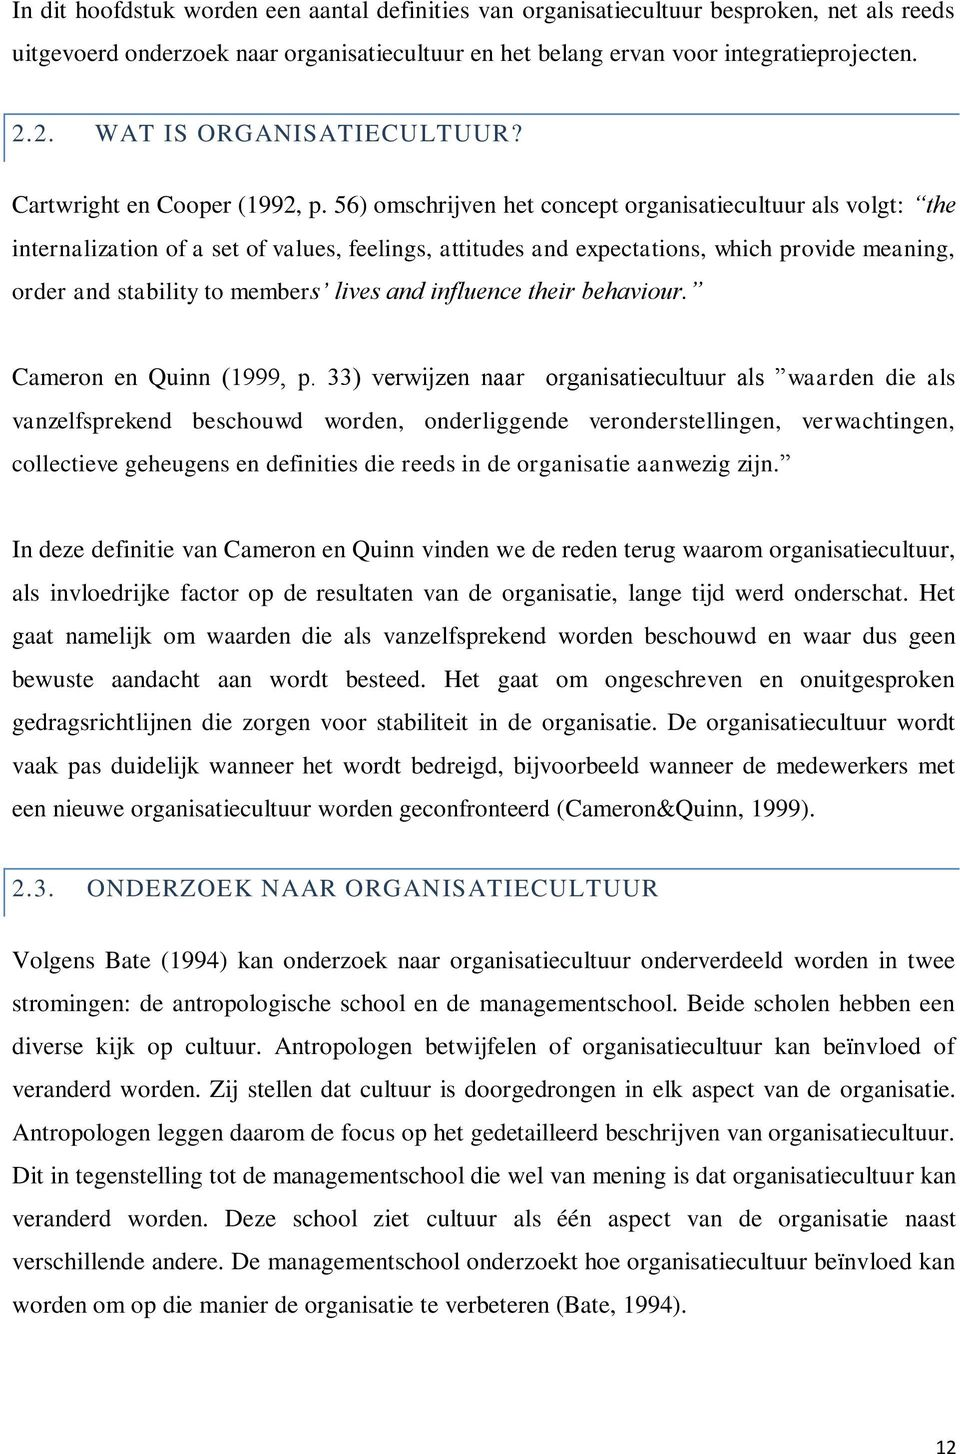 56) omschrijven het concept organisatiecultuur als volgt: the internalization of a set of values, feelings, attitudes and expectations, which provide meaning, order and stability to members lives and